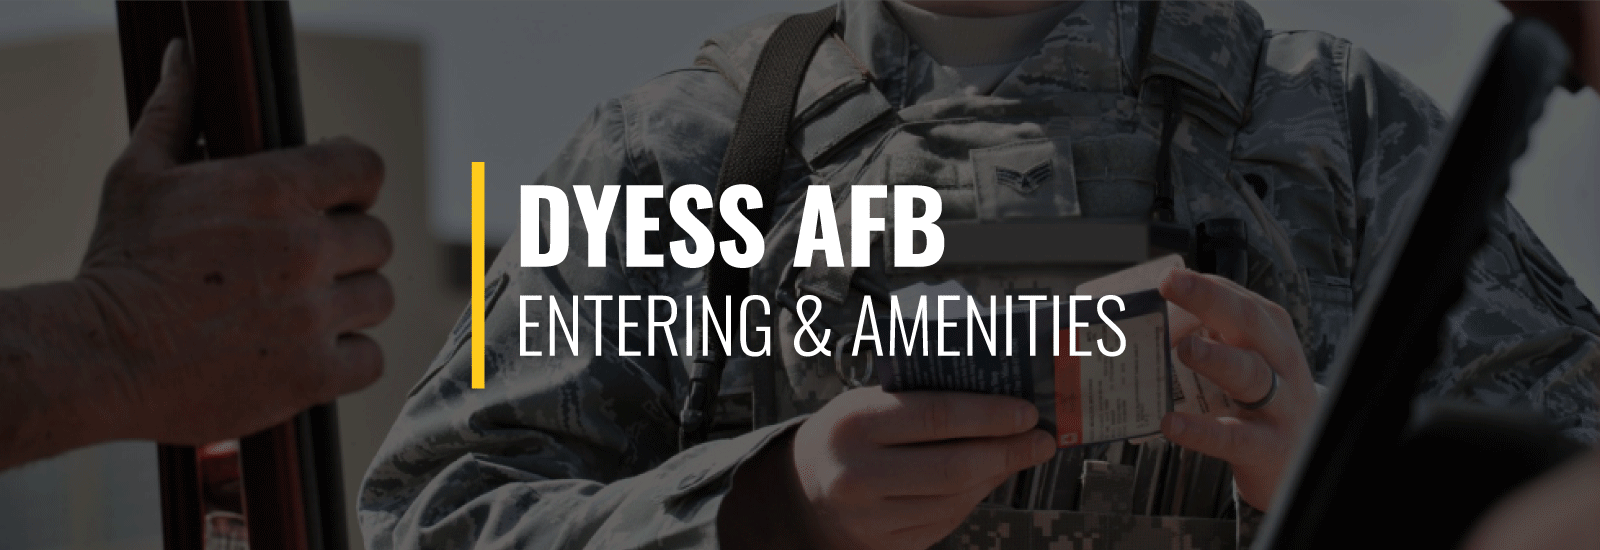 Entering Dyess Air Force Base and Amenities